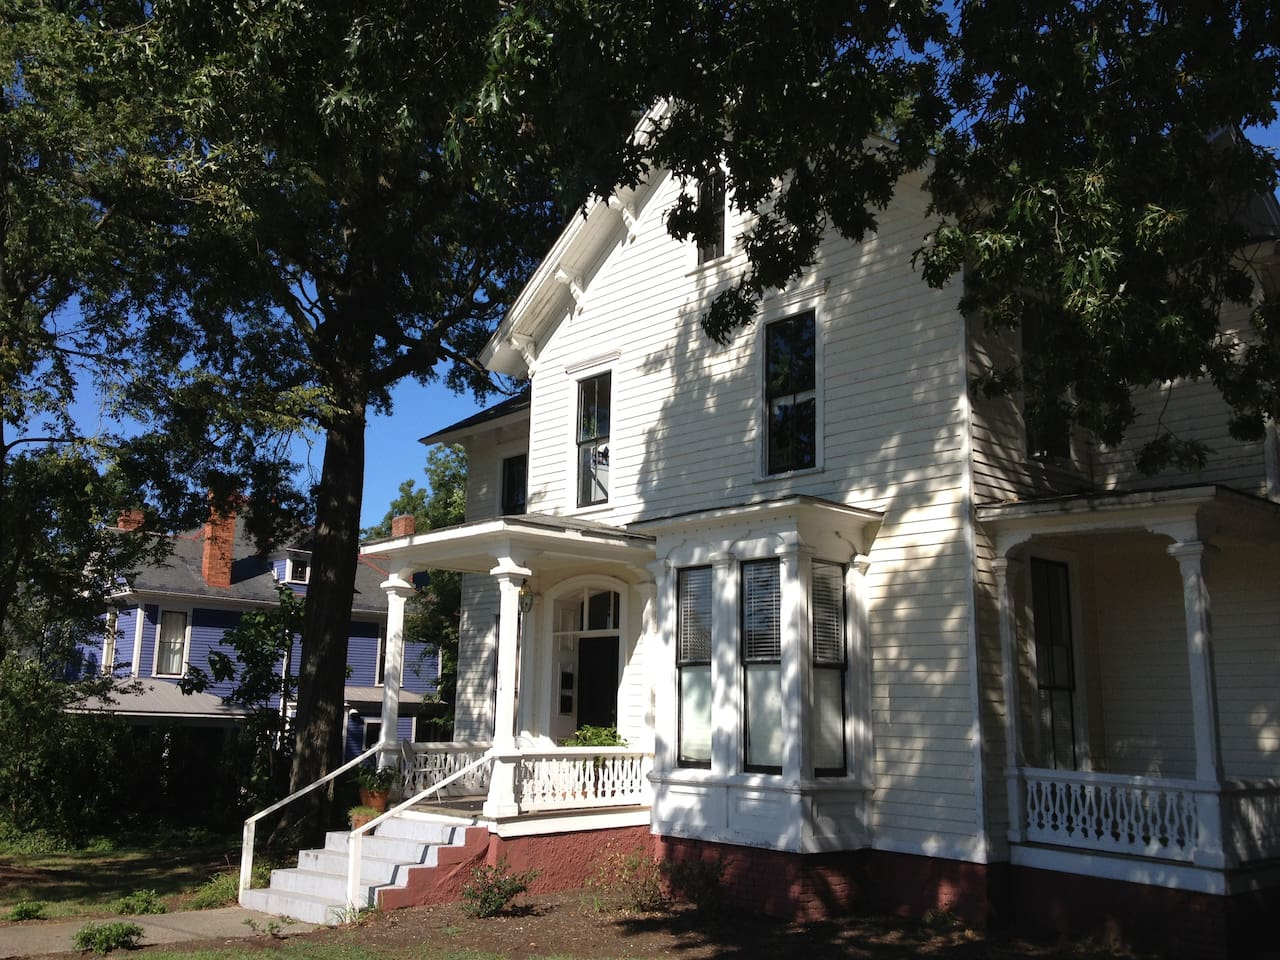 Sally's Suite is a Great Historic Studio Apartment in the John C. Winder home.  Built in 1874, the apartment home is a contributing structure in Historic Oakwood in Downtown Raleigh.